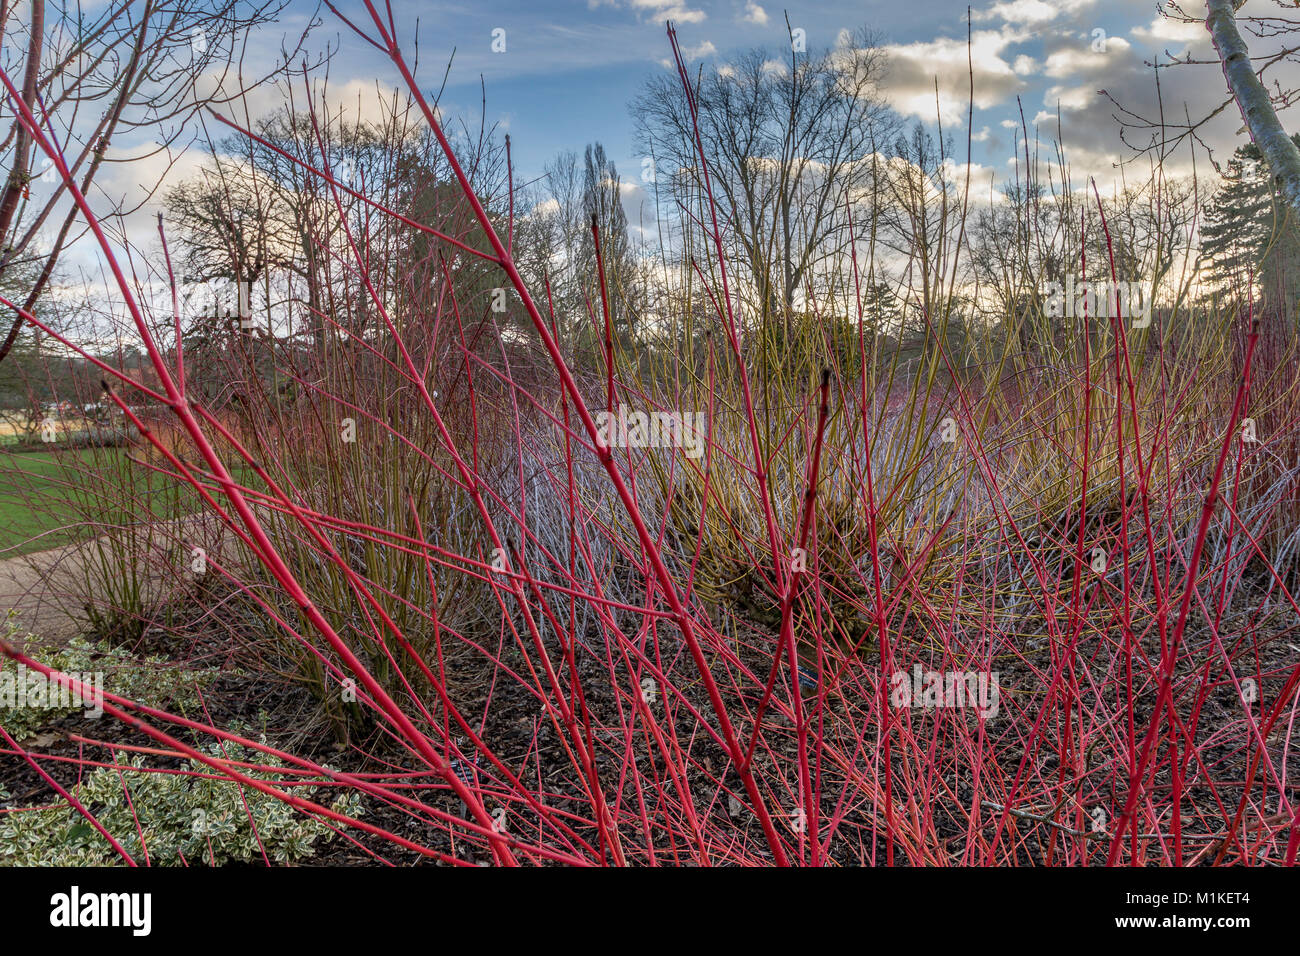 winter colour of Cornus Alba Baton Rouge with their bright red stems planted against a backdrop of Rubus cockburnianus - Stock Image